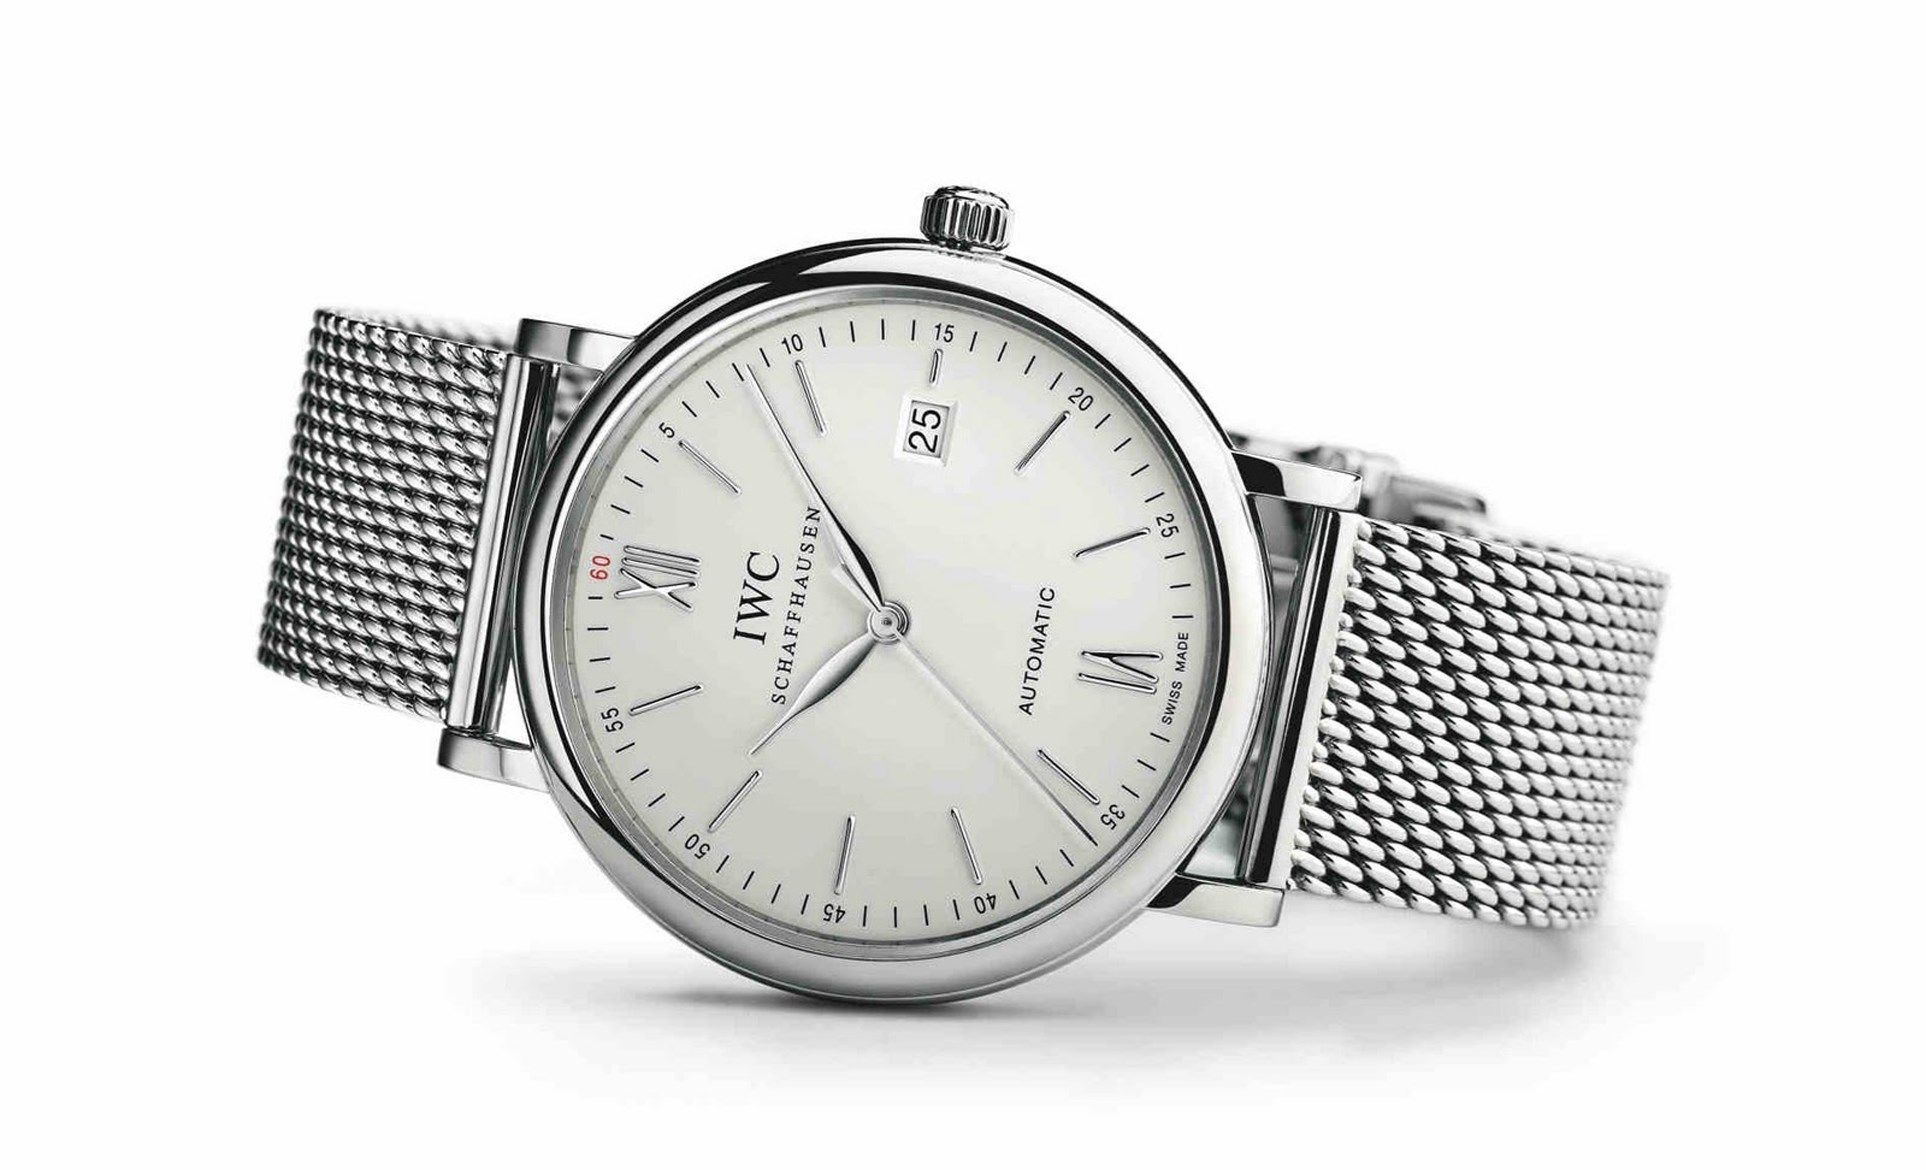 A Refresh Of Iwc S Original Entry Level Watch Is Rumoured To Be